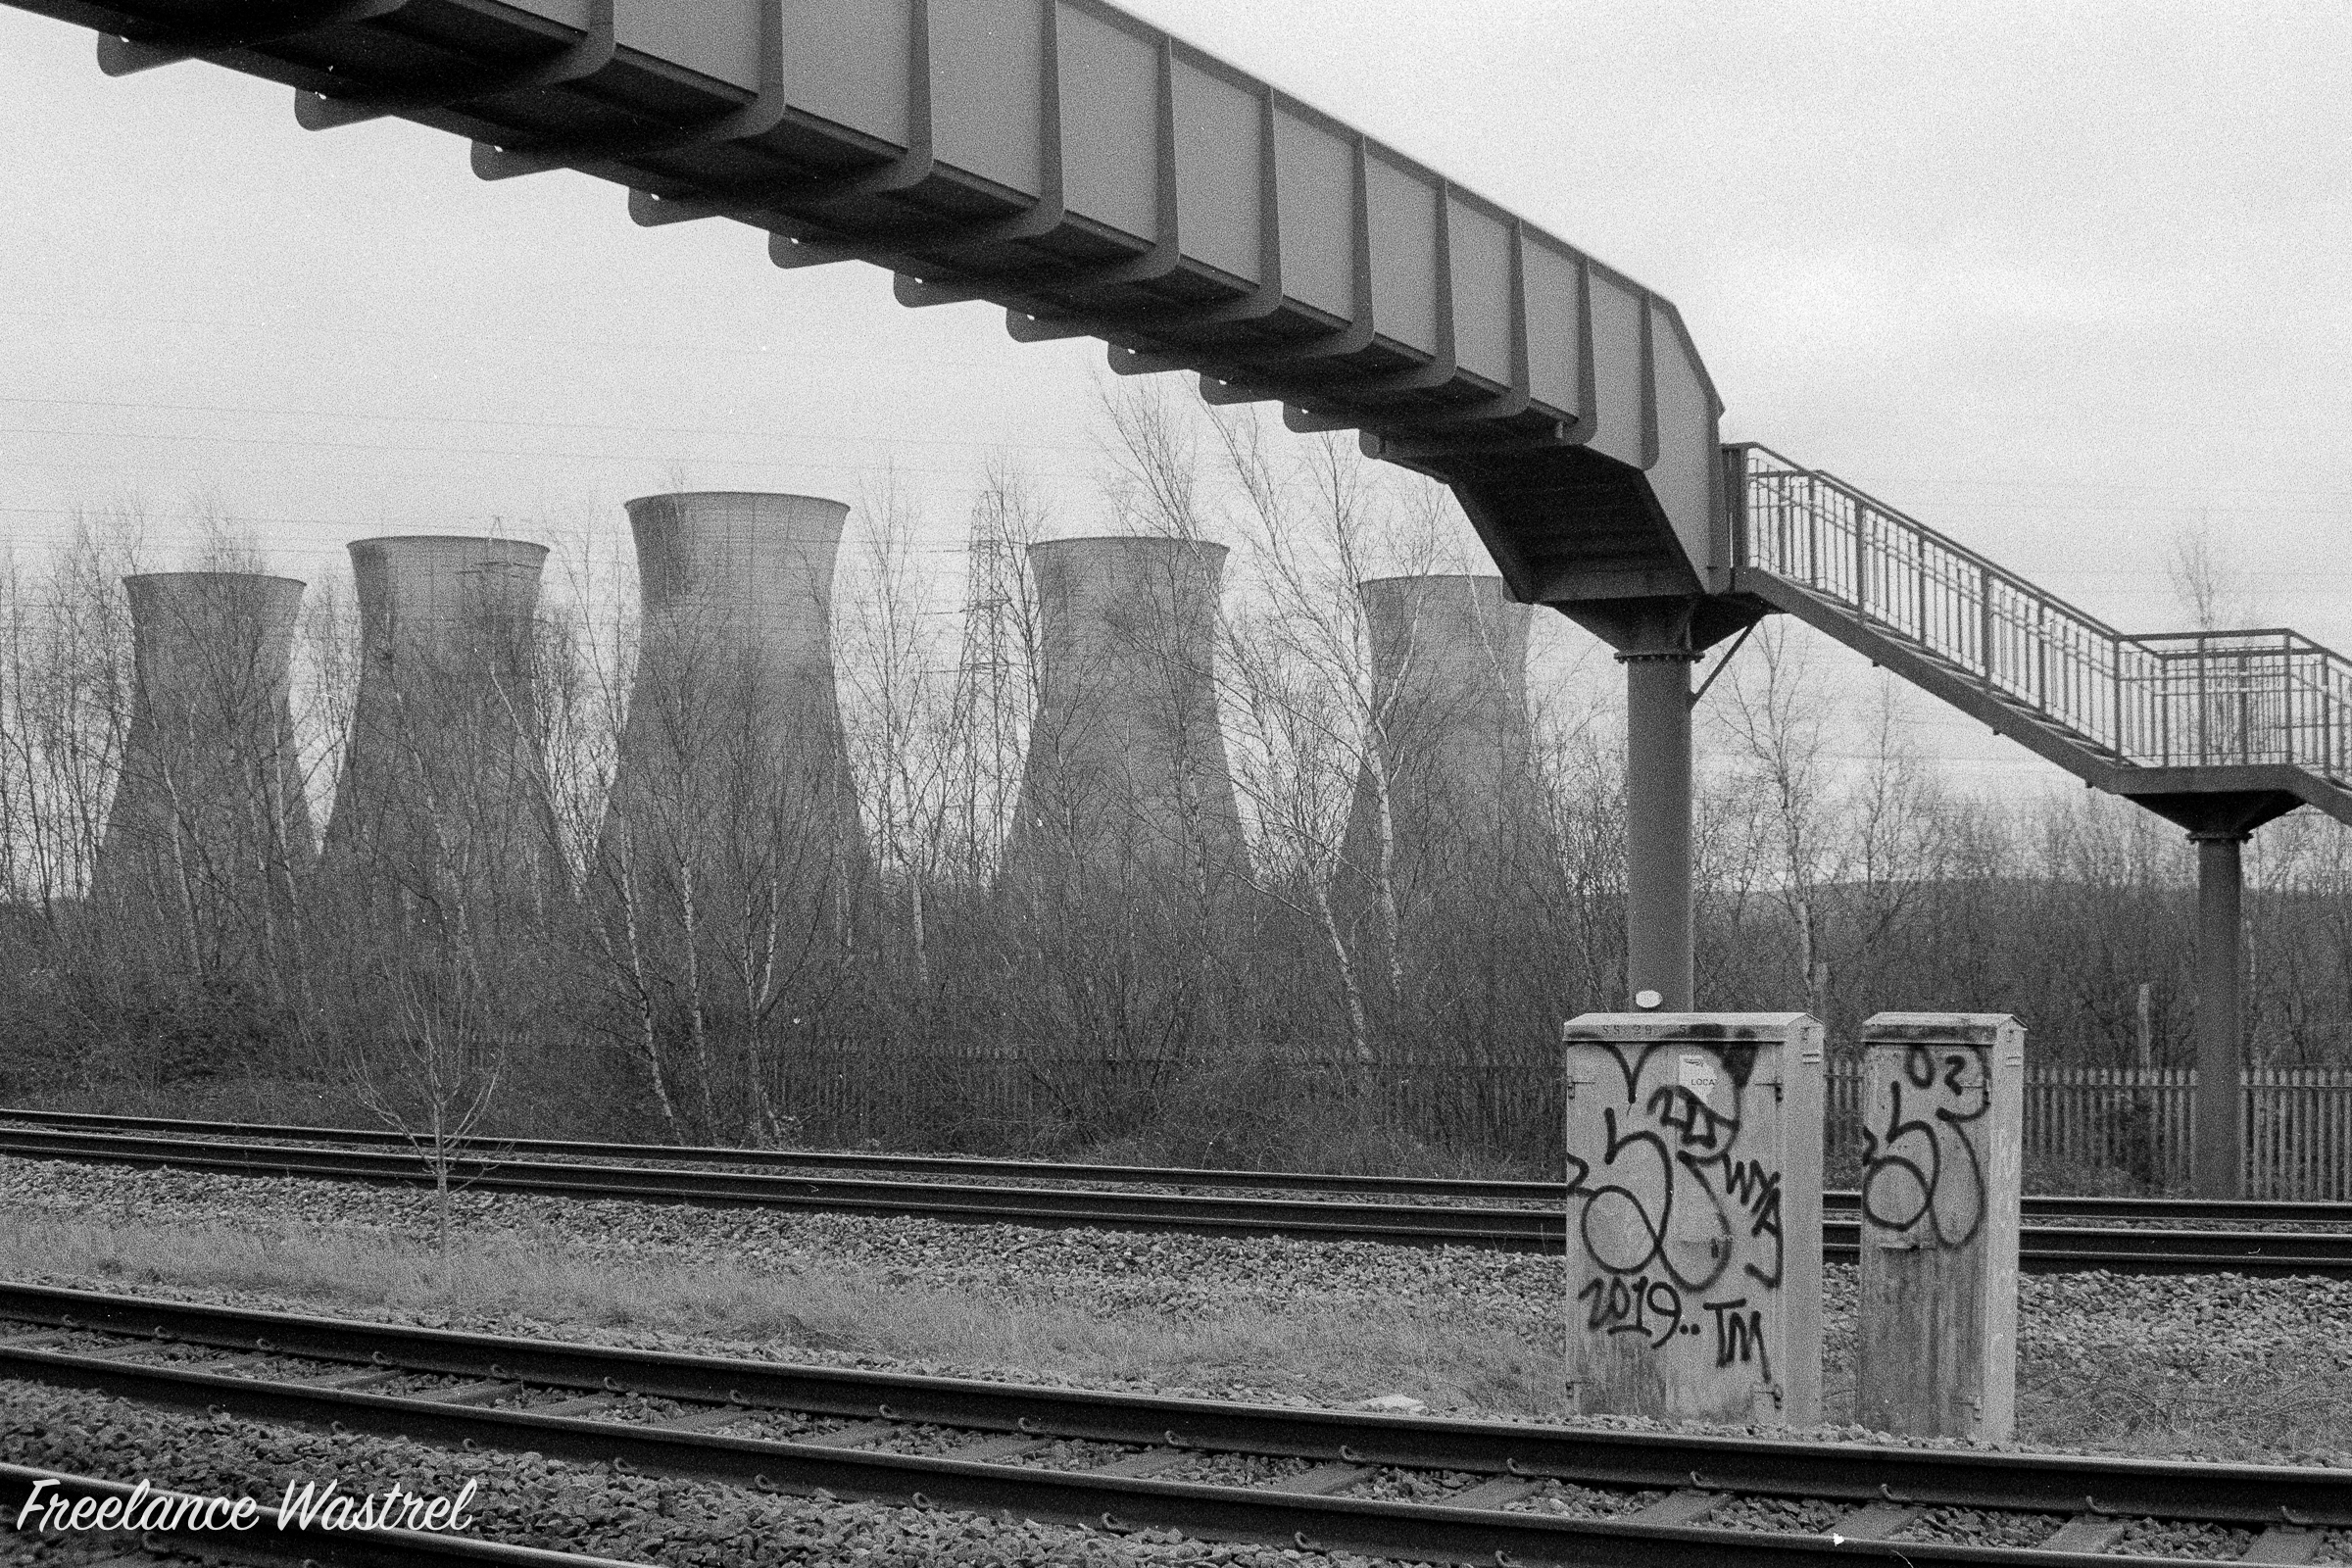 Willington Cooling Towers, January 2020